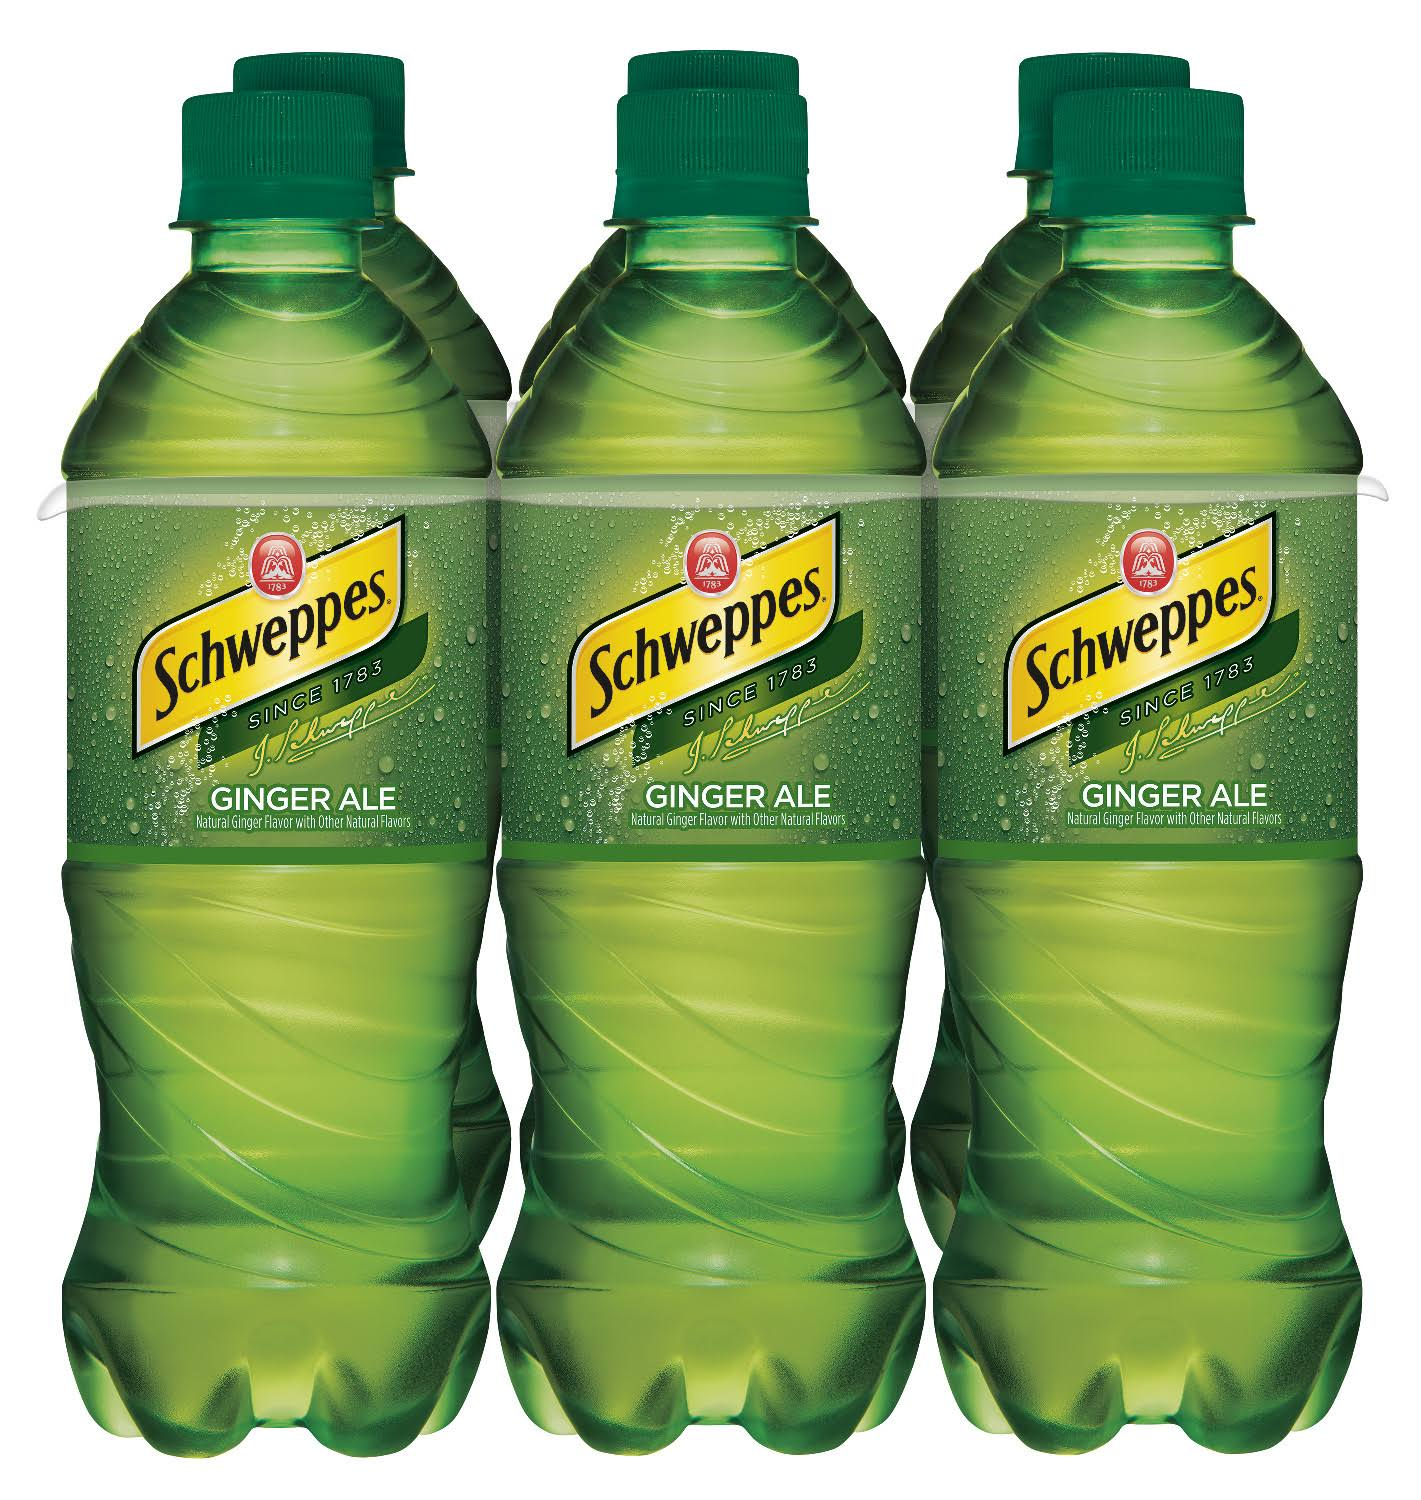 Schweppes Ginger Ale - 6 pack, 16 fl oz bottles